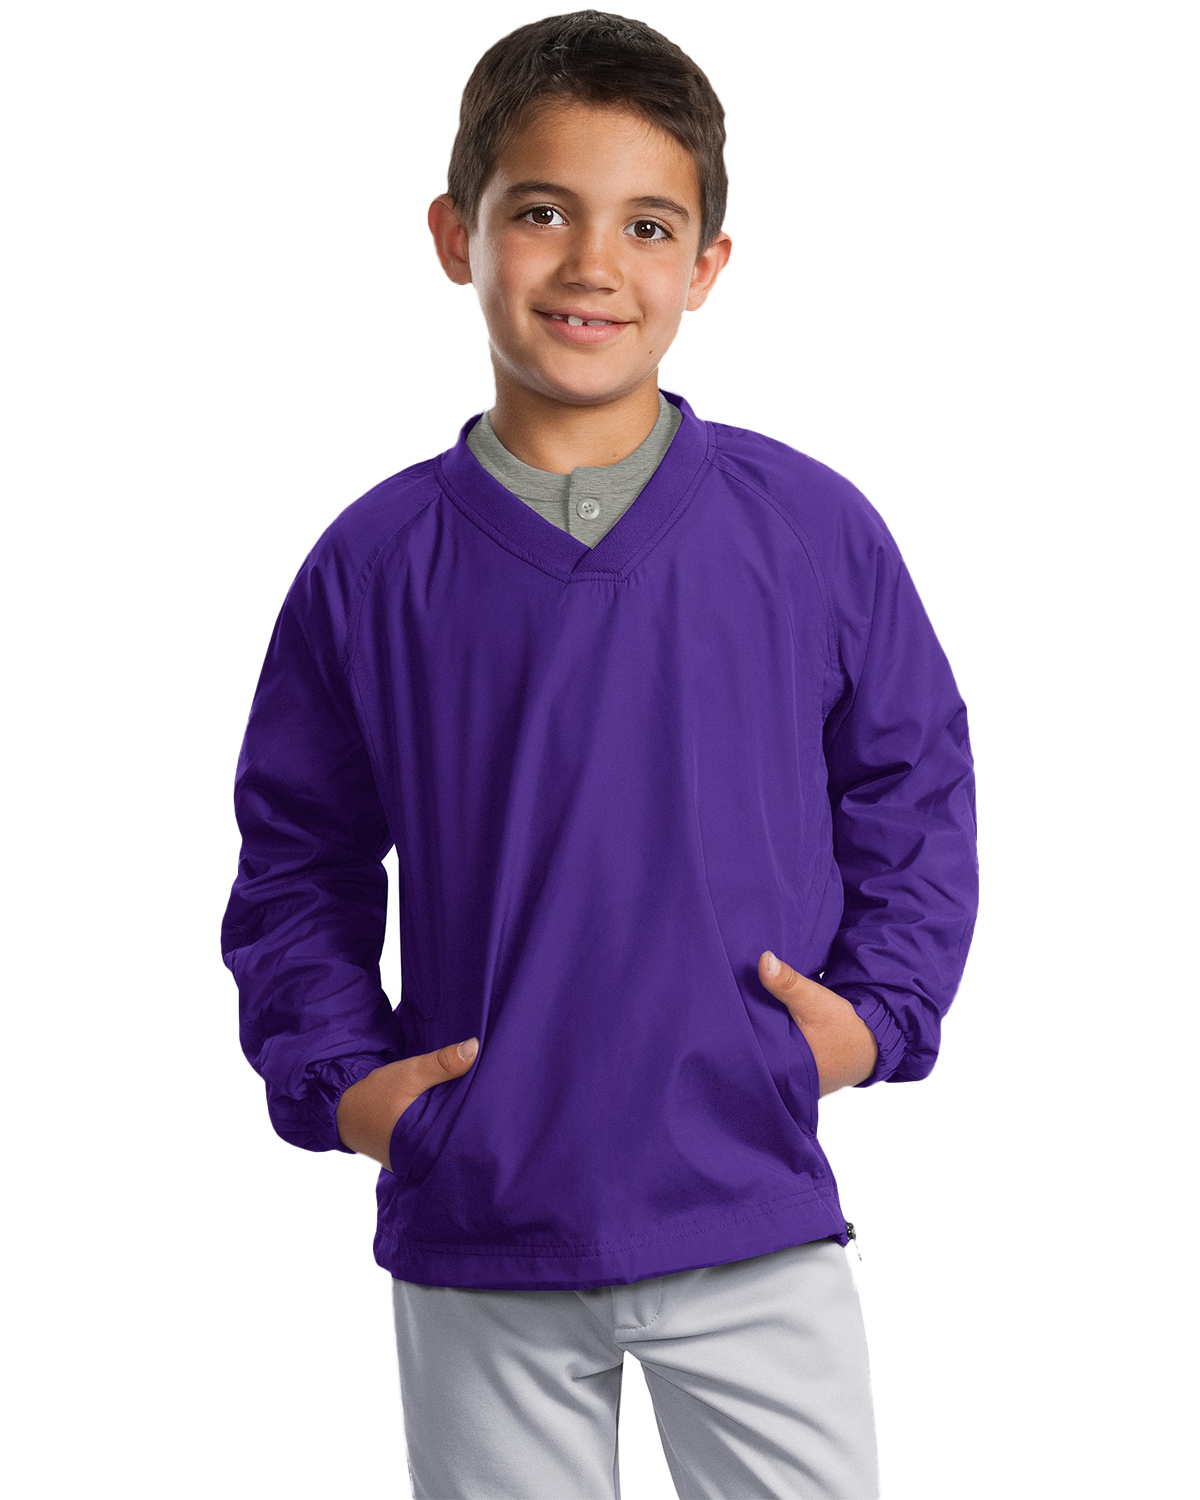 Sport-Tek YST72 Boys V-Neck Raglan Wind Shirt at GotApparel